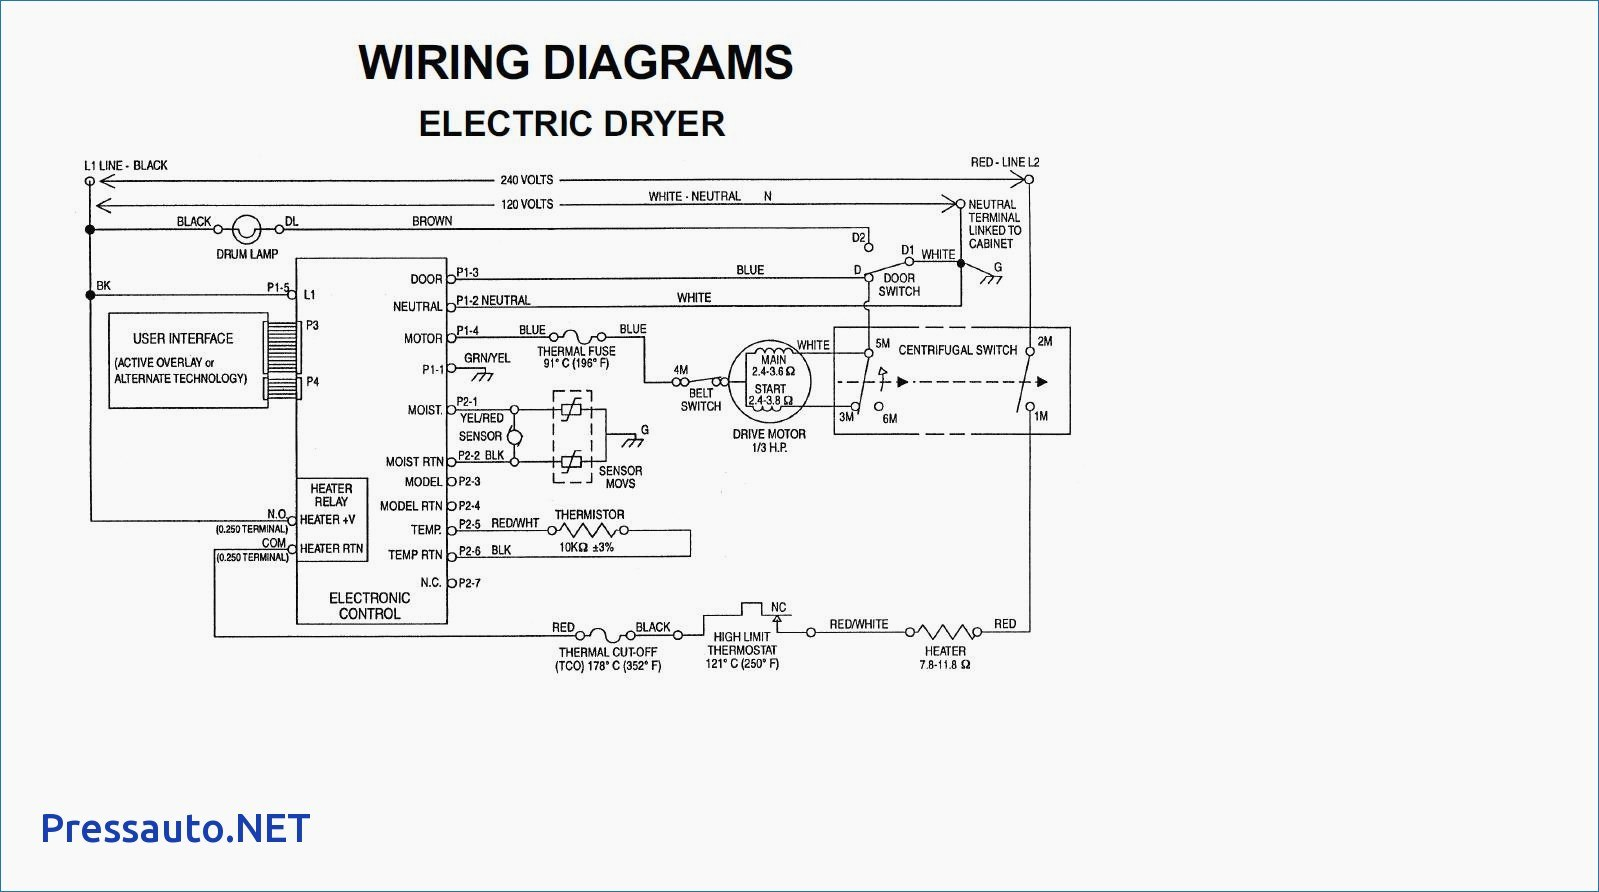 kenmore dryer wiring diagram Download-Electrical Circuit Diagram Wonderful Kenmore Dryer Wiring Diagram Fitfathers Me. DOWNLOAD. Wiring Diagram ...